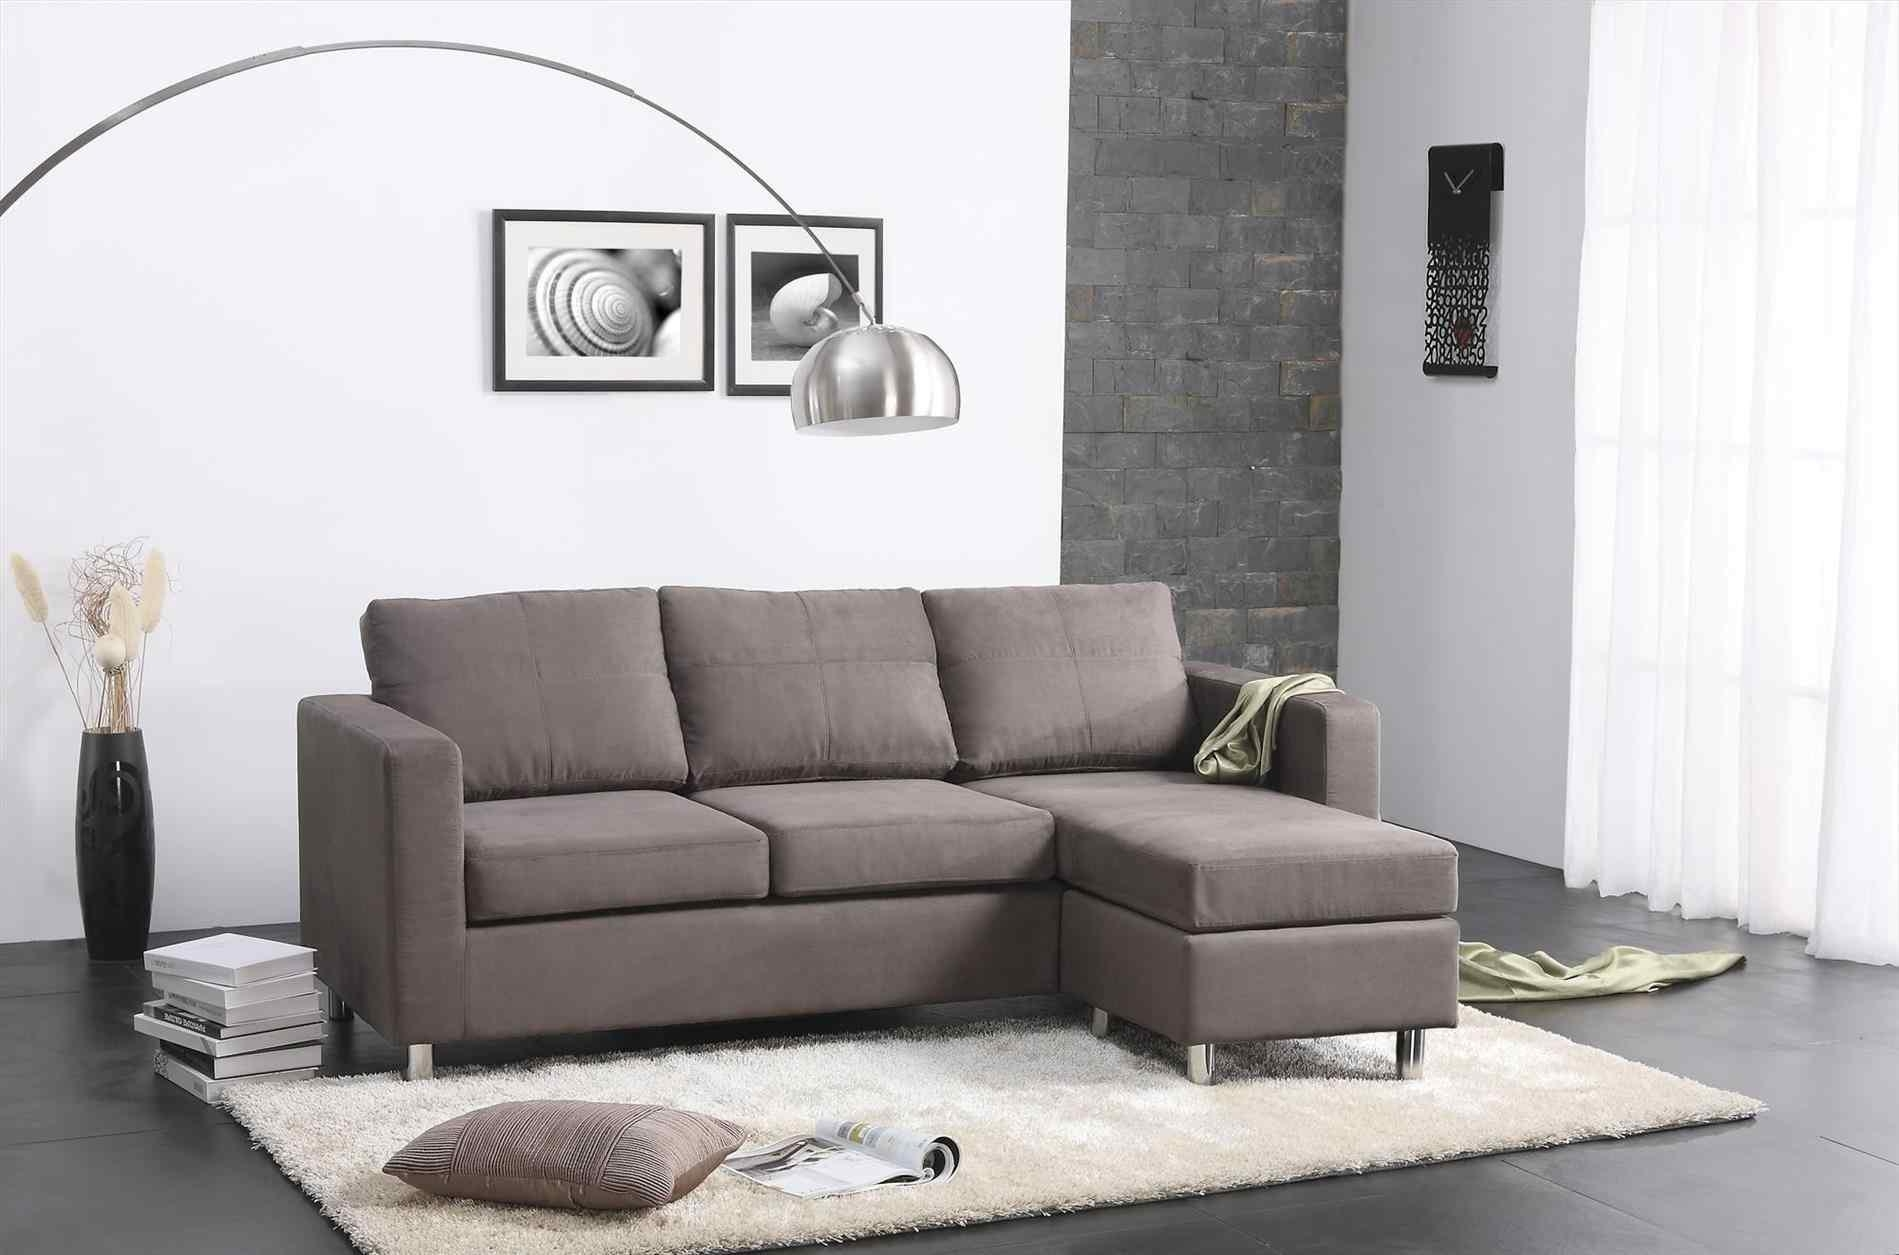 Floor Lamps For Sectional Sofas | Chair And Sofa For Floor Lamp For Sectional Couch (View 14 of 15)